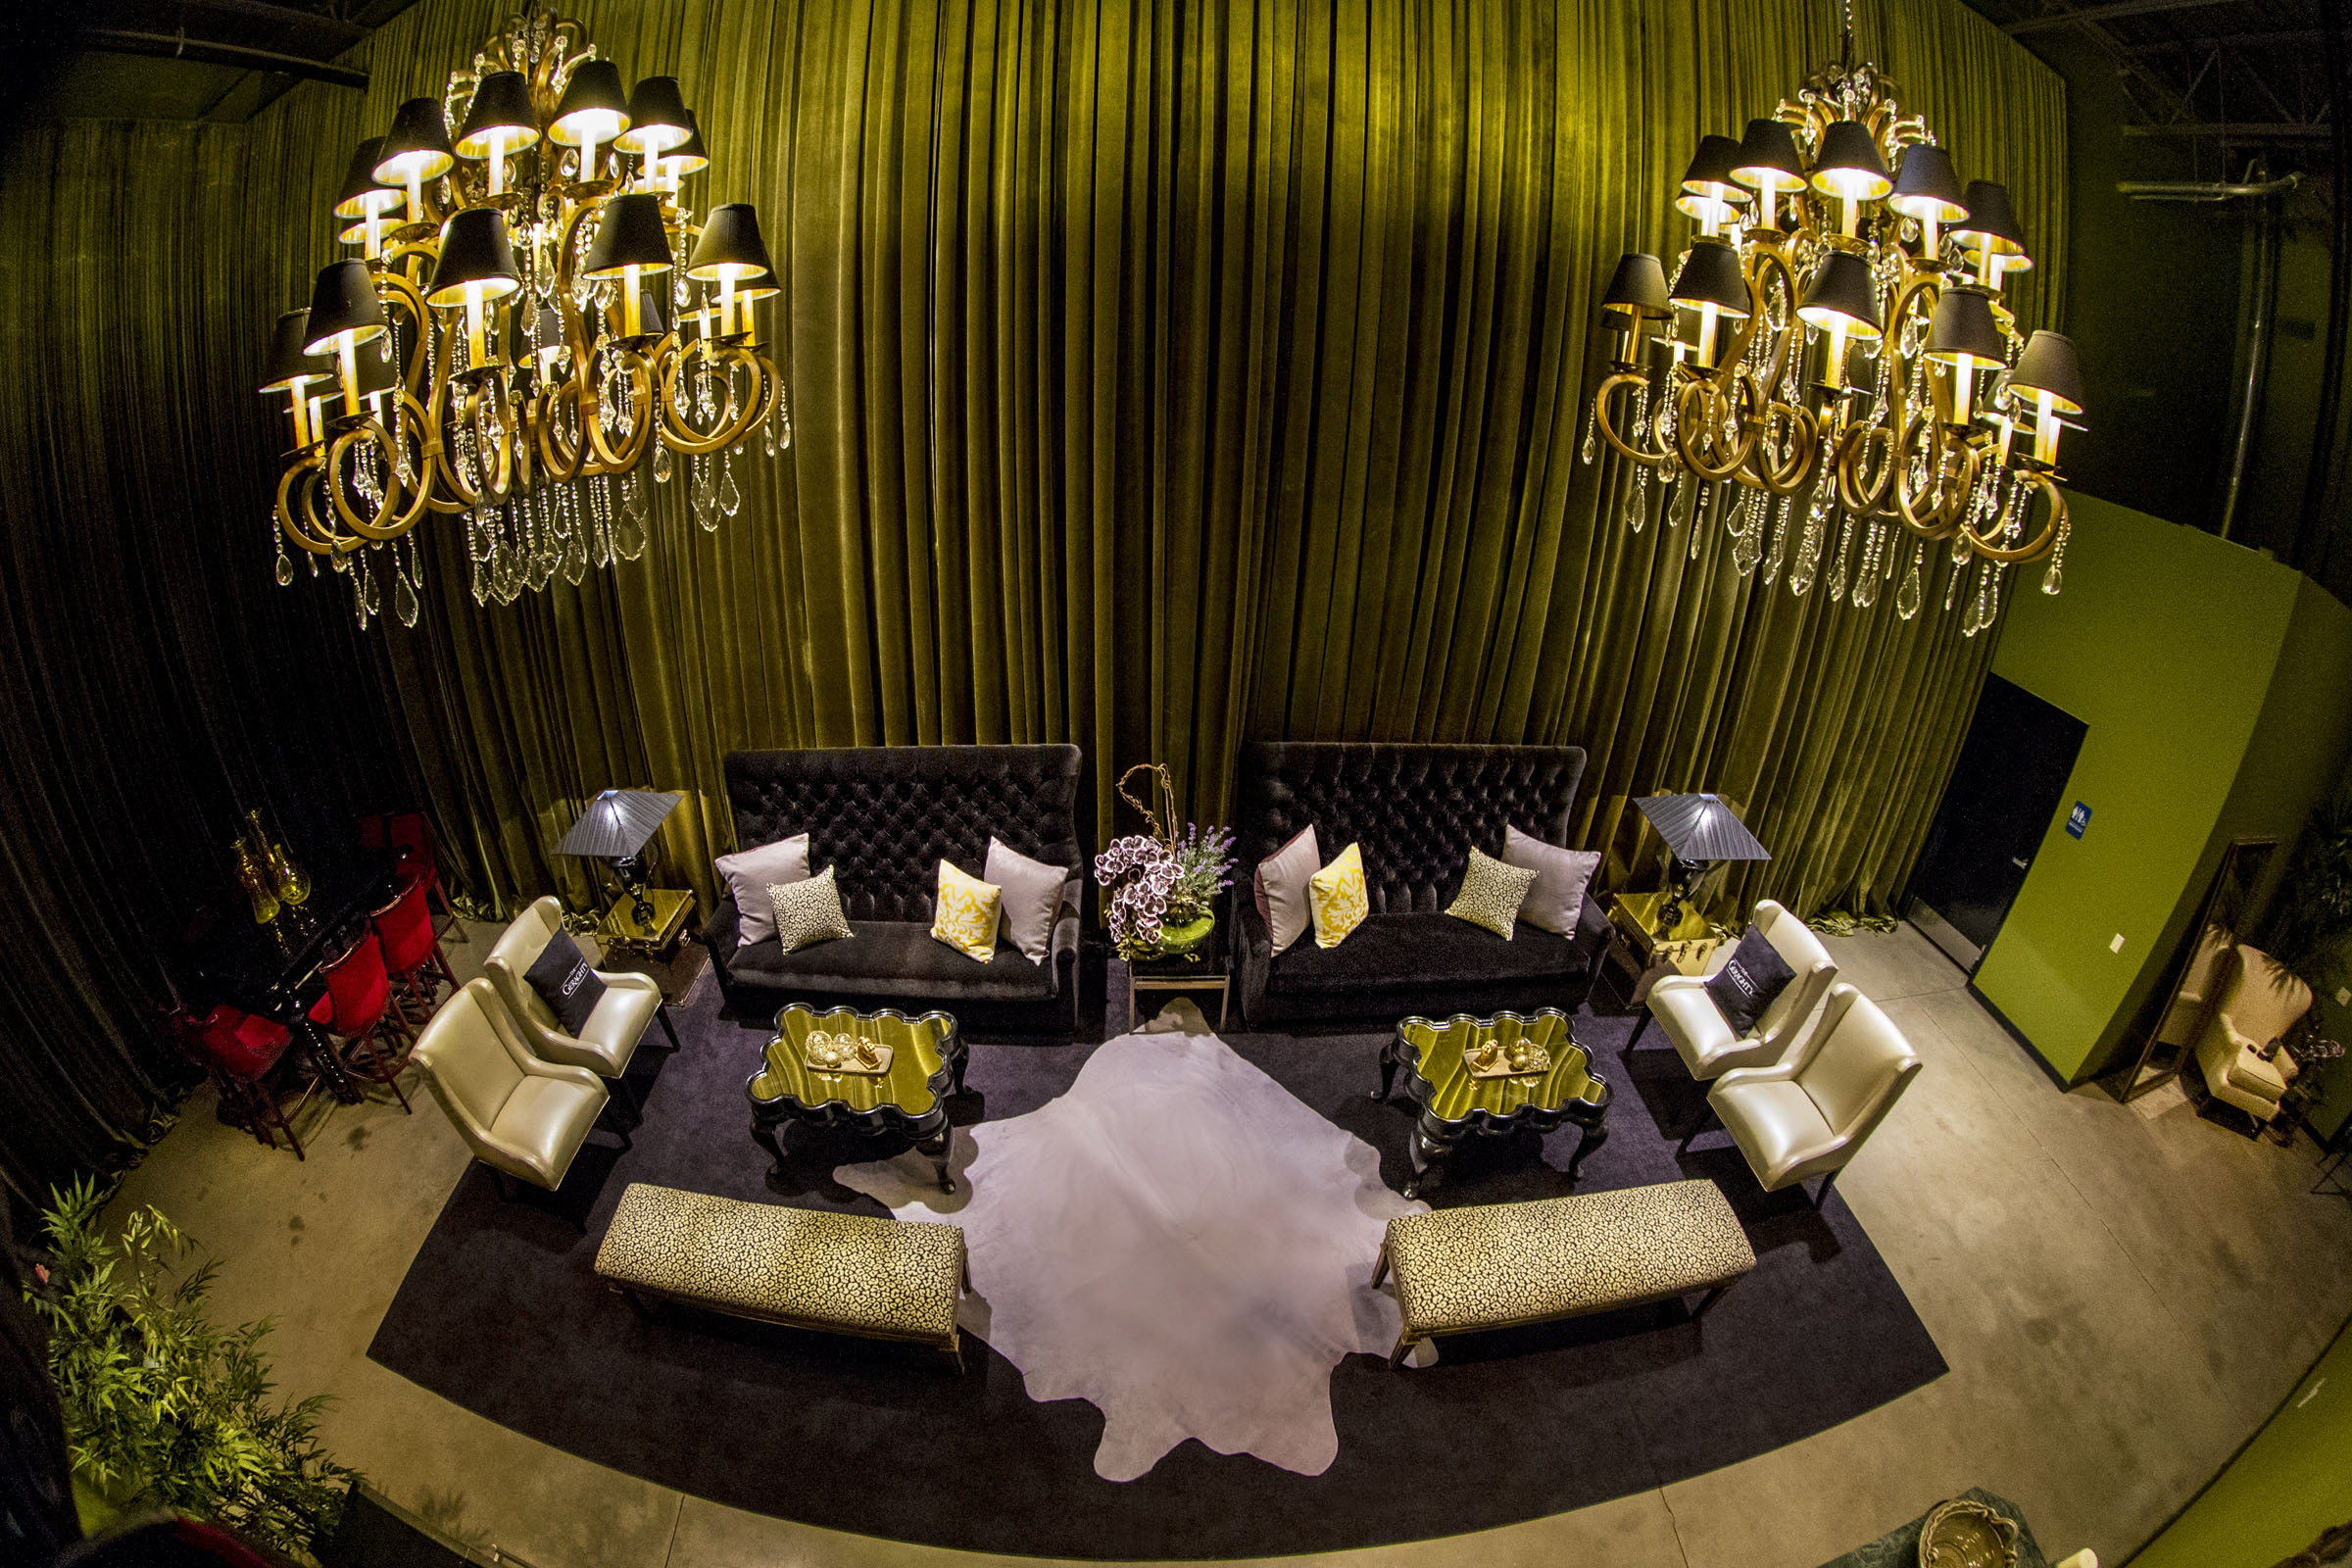 The VIP Green Room